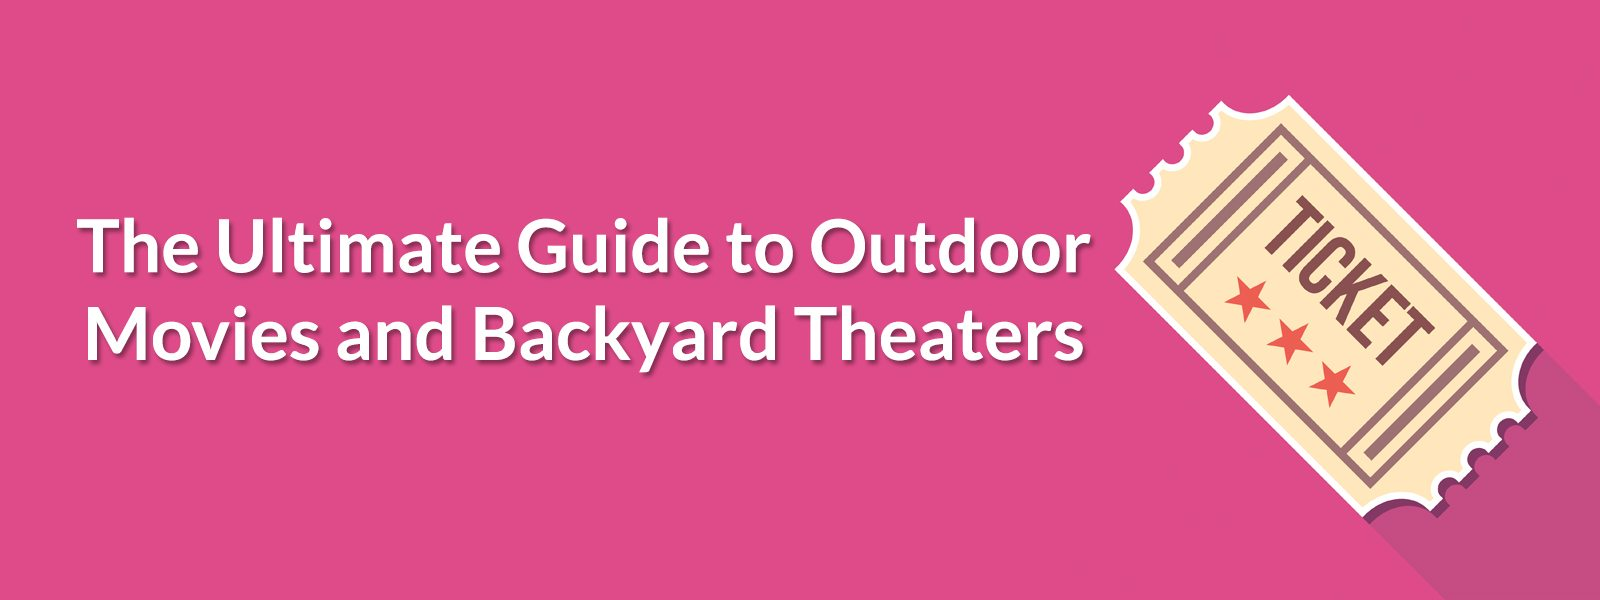 the ultimate guide to backyard theaters 2017